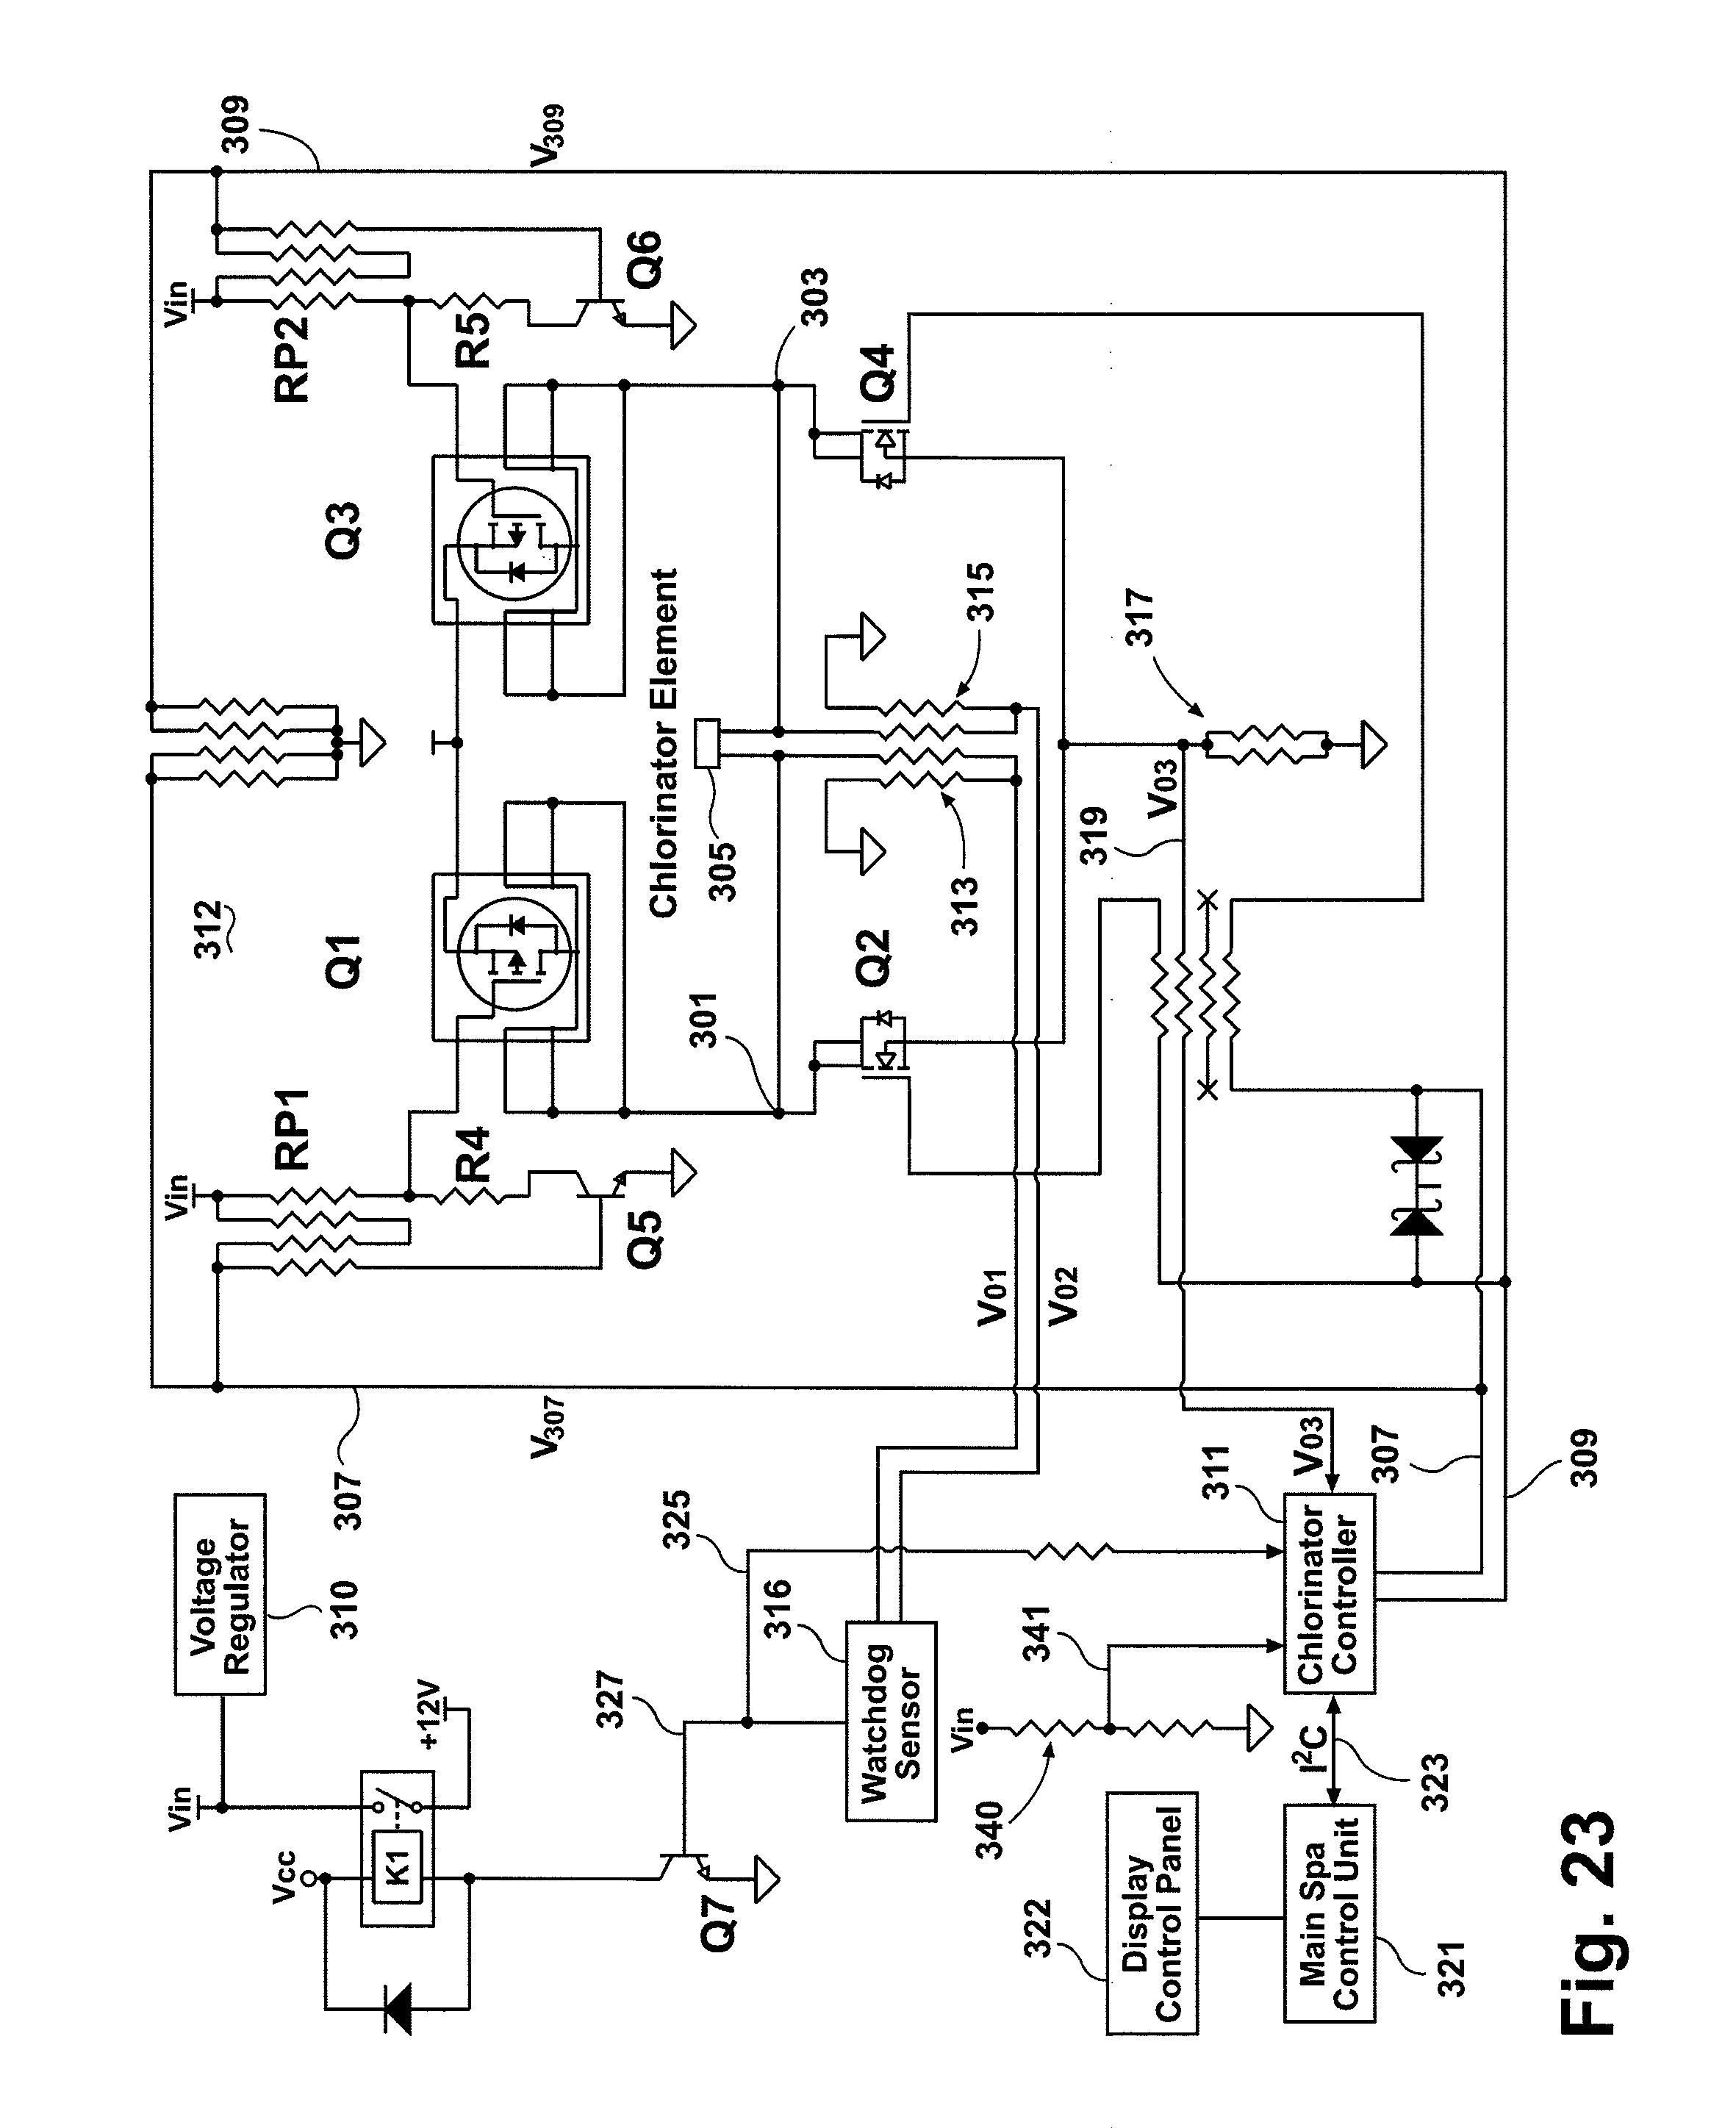 US8273254 on Spa 220 Wiring Diagram